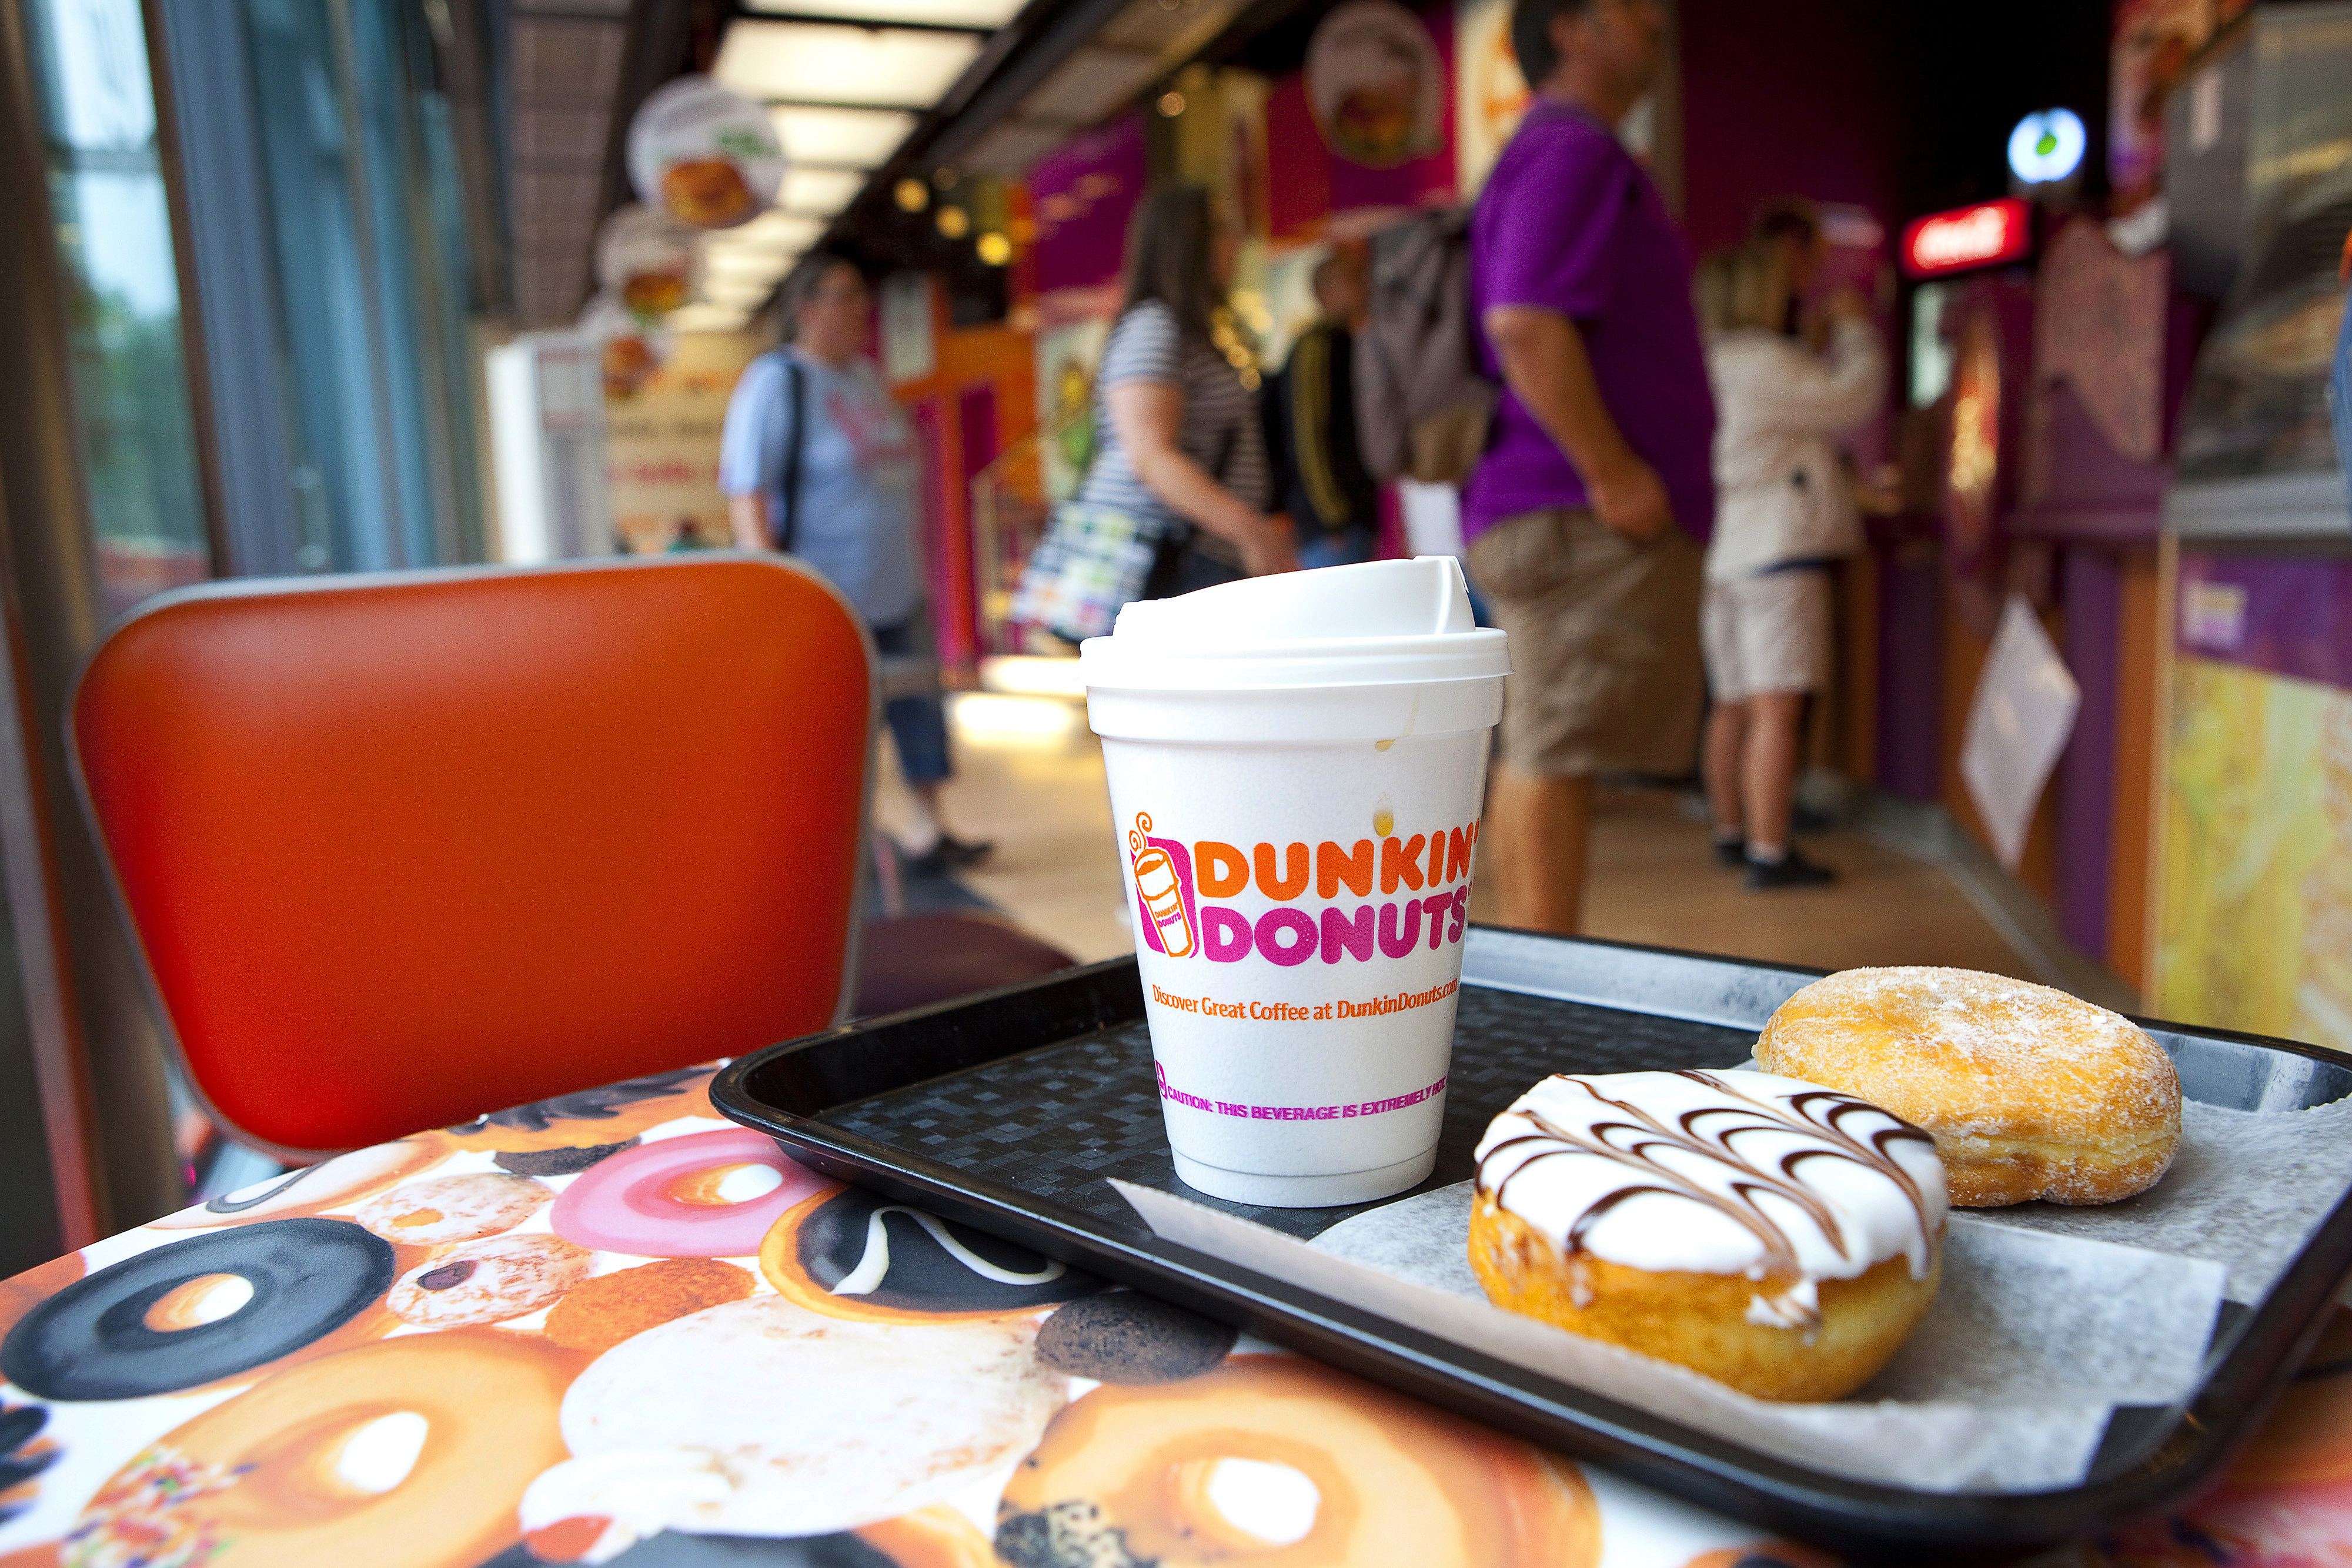 Dunkin' Donuts Just Introduced 'Donut Fries' and Everyone Already Loves Them